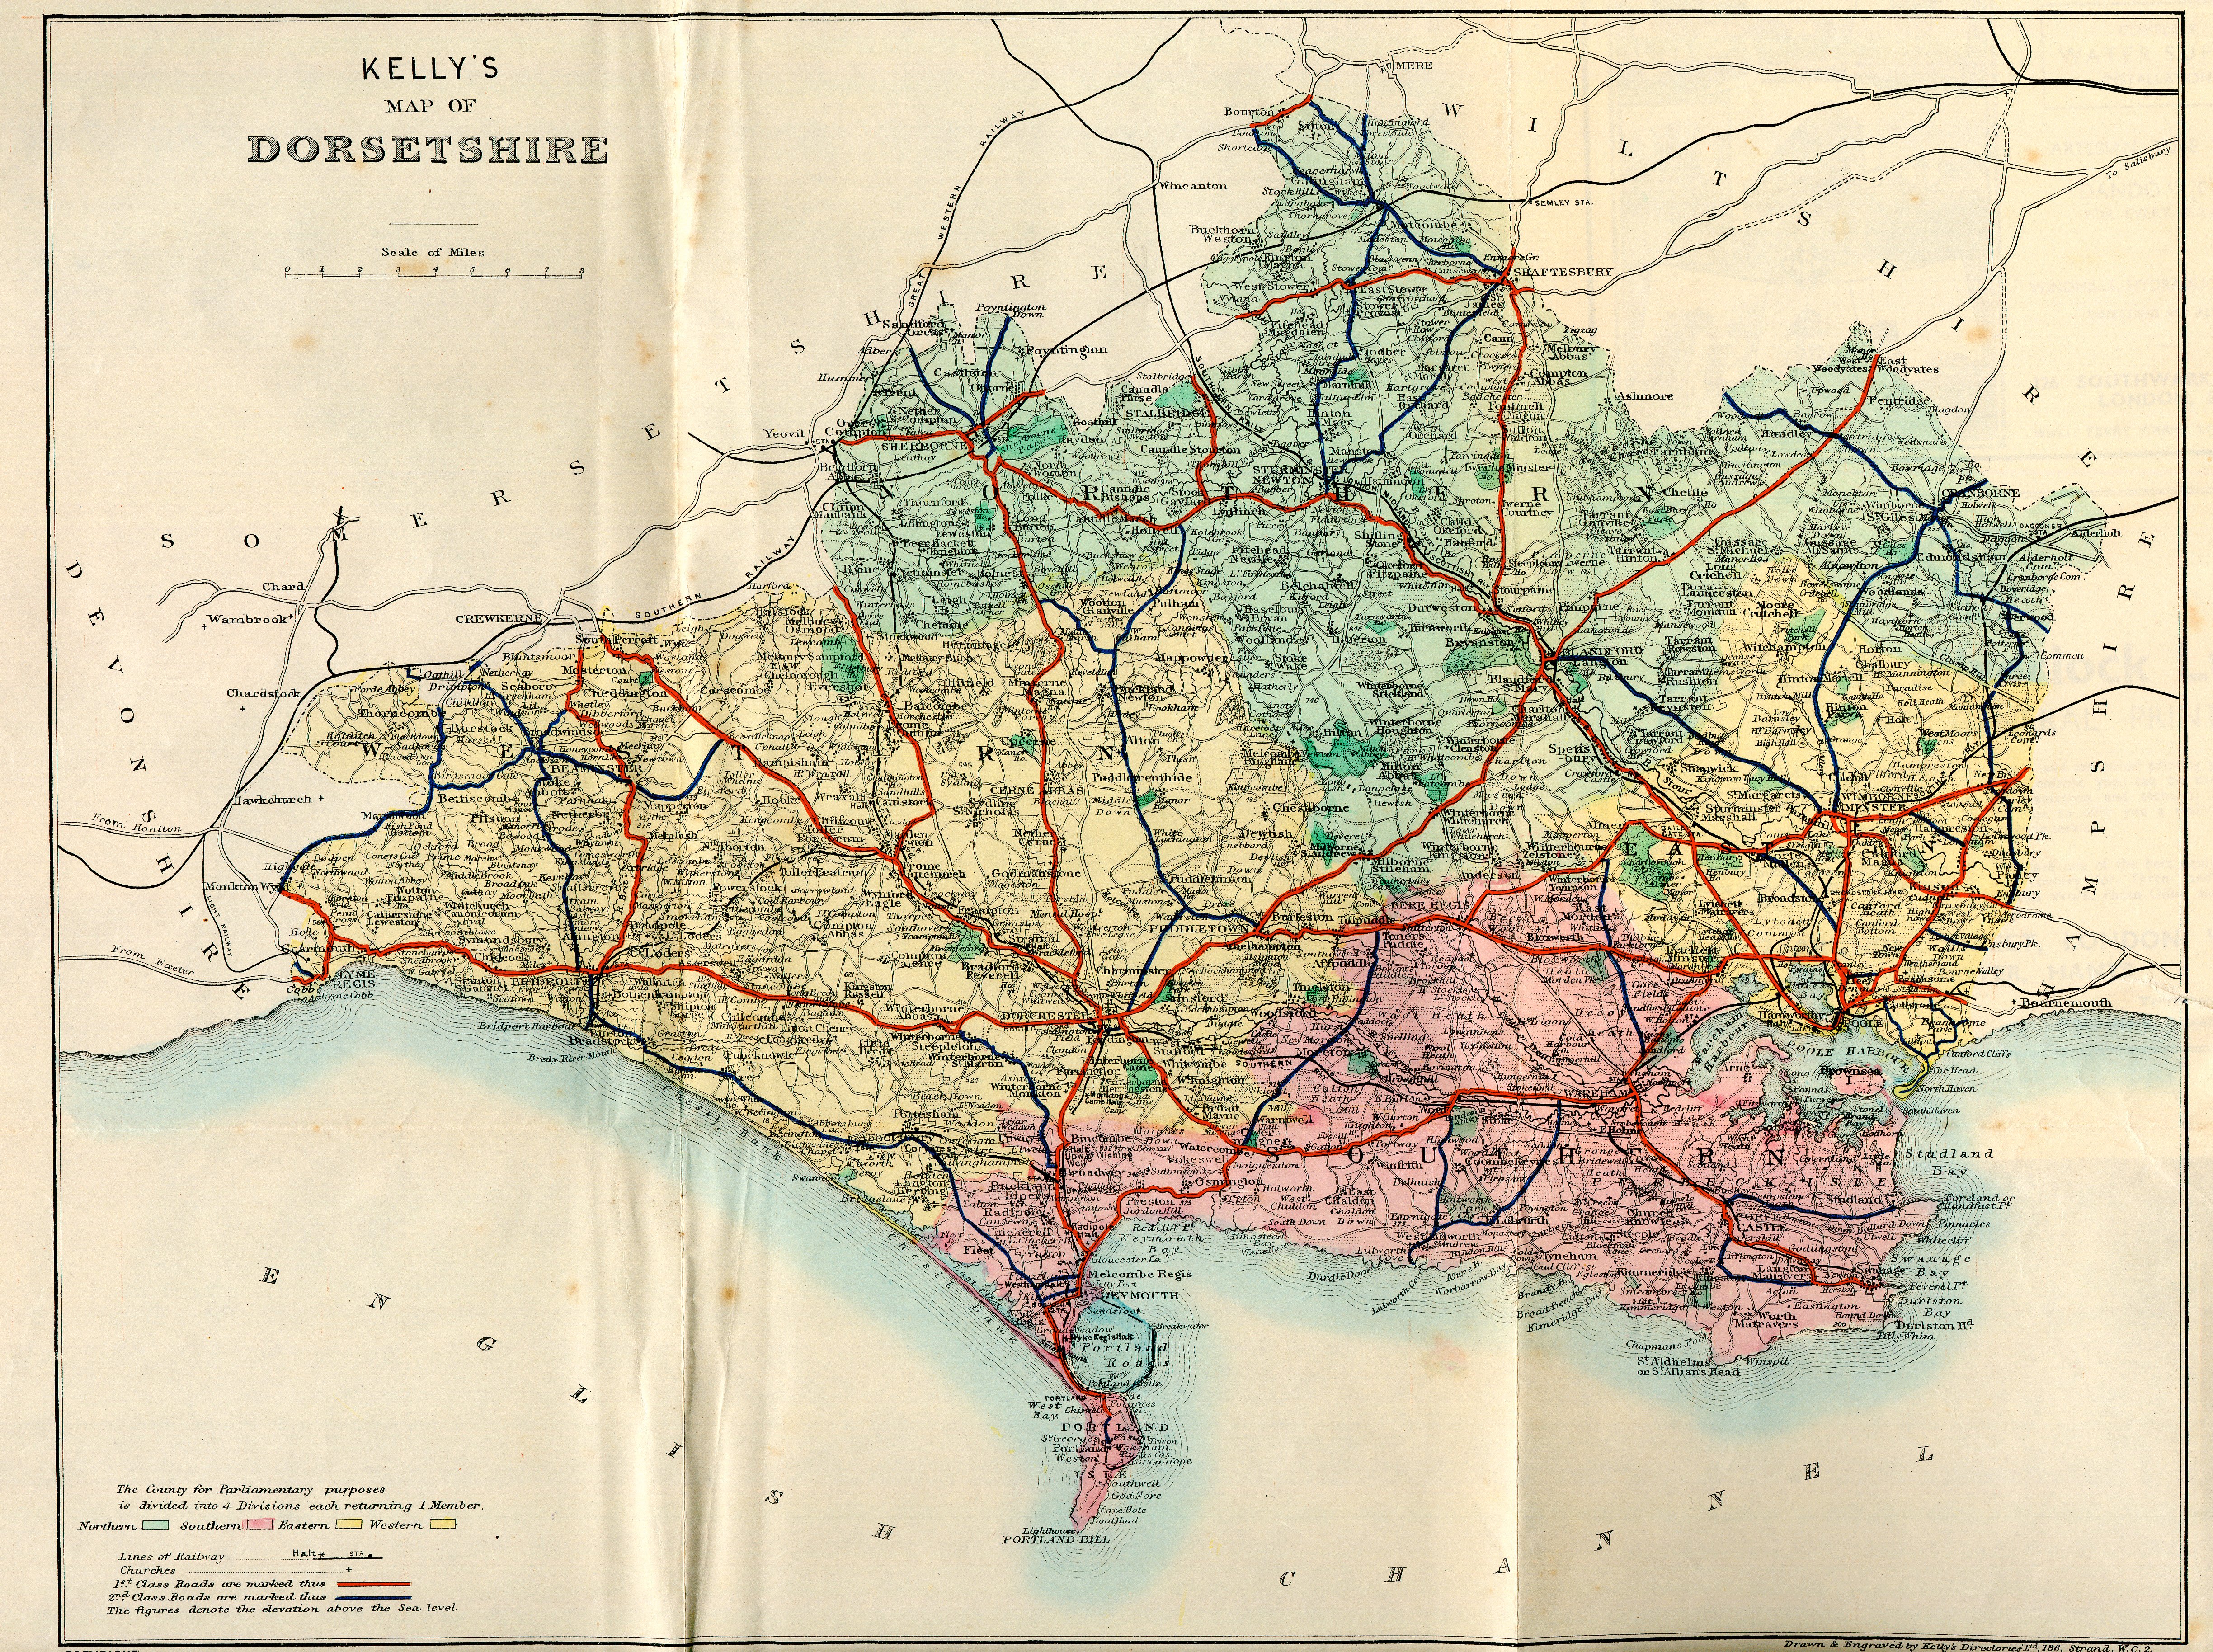 Kelly's Directory of Dorsetshire, 1935 page map - click to open larger version in a new window